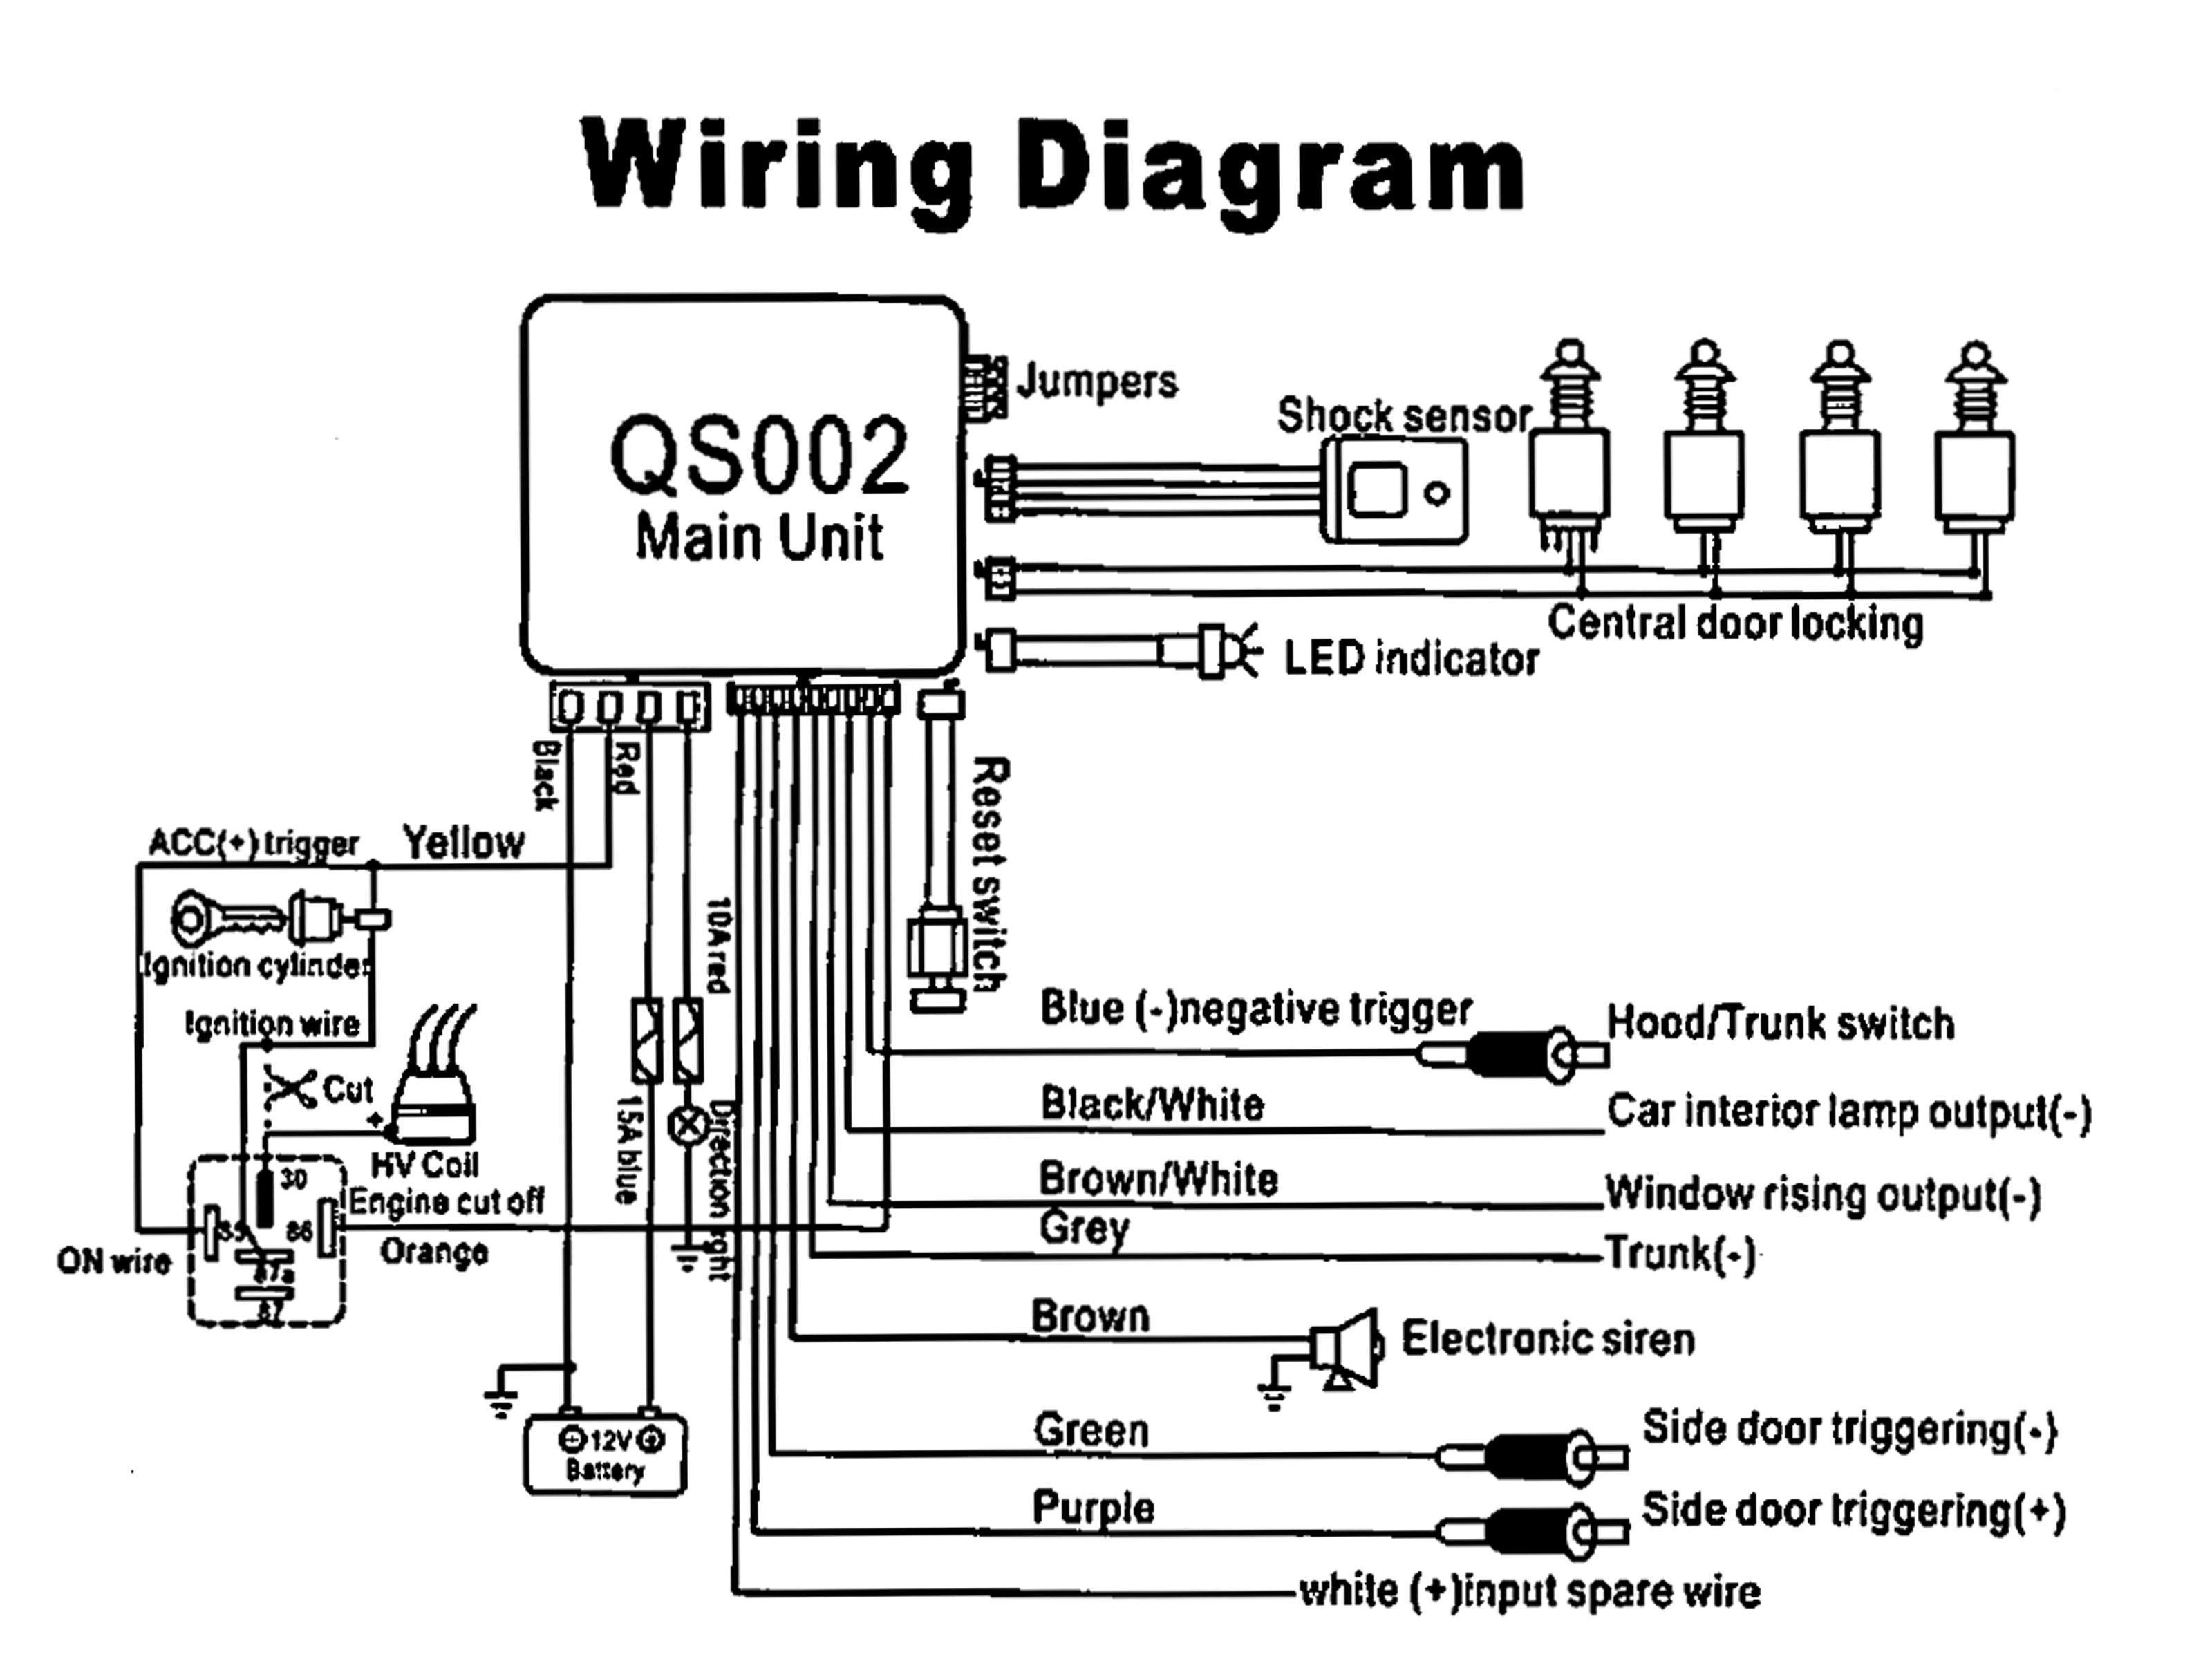 [DIAGRAM_5FD]  ☑ Viper 5900 Alarm Wiring Diagram HD Quality ☑ timeline.twirlinglucca.it | Viper 5900 Wiring Diagram |  | Diagram Database - Twirlinglucca.it